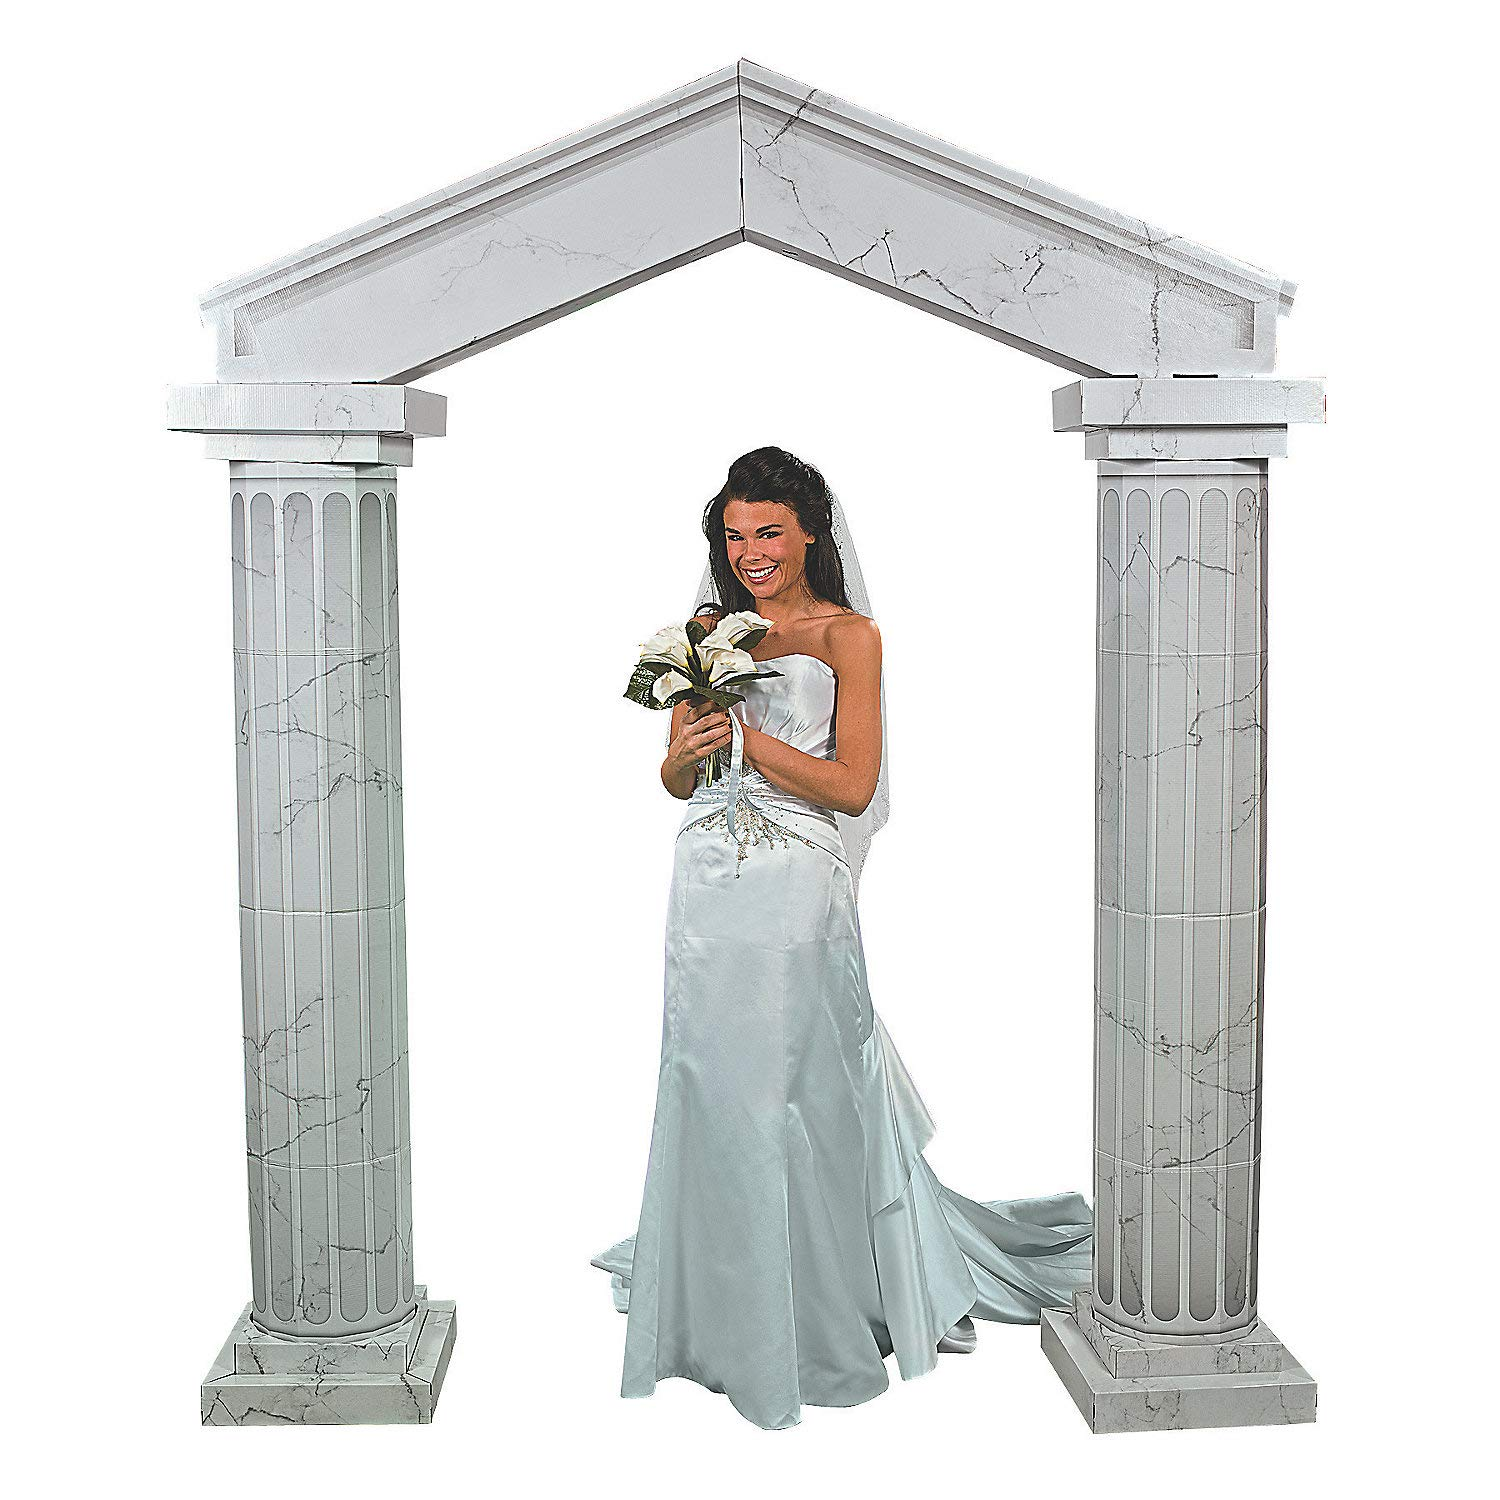 Fun Express Marble-Look Fluted Cardboard Arch Way Kit - Large Party Decor - Wedding, Prom, Formal Dances - 3D Stand Ups - (2) 6ft Columns with Arch Included